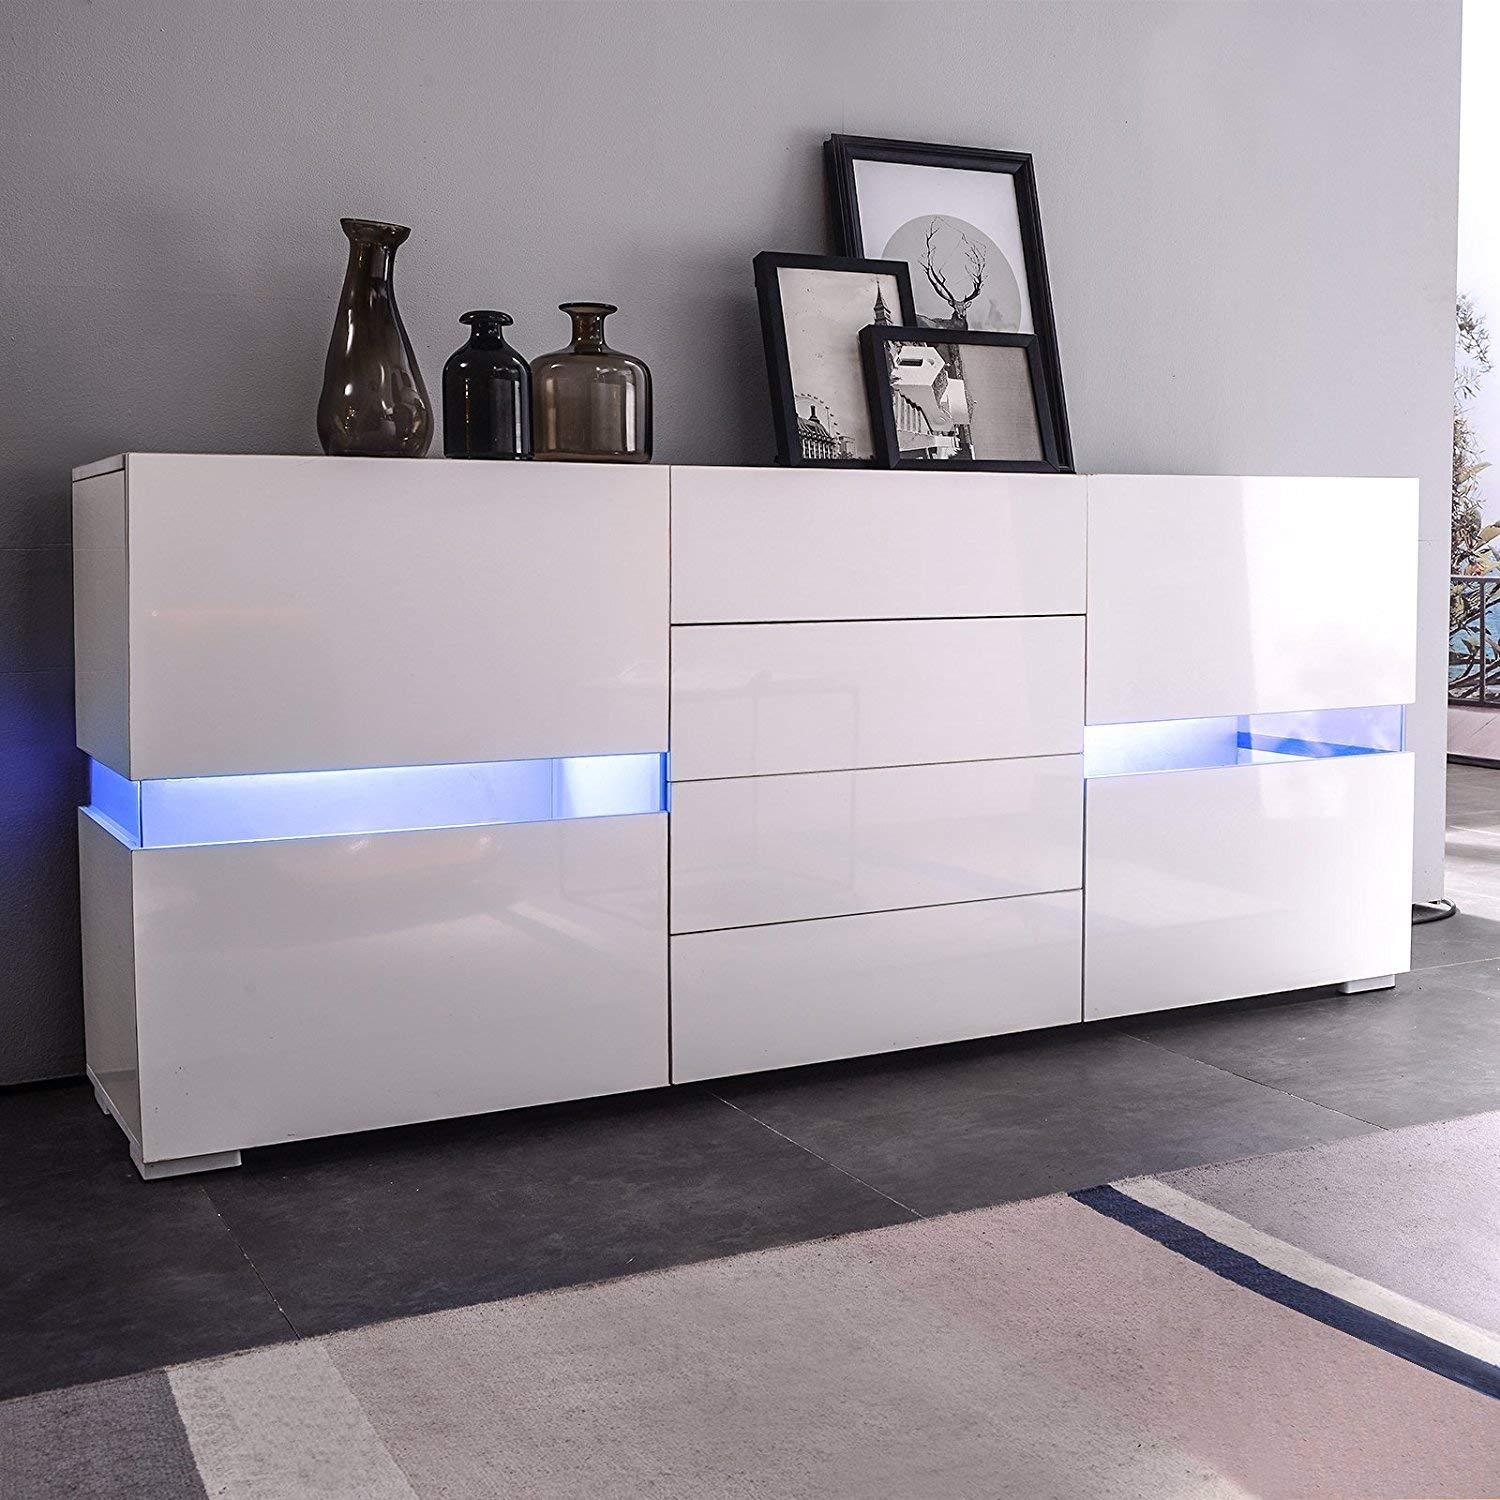 Sideboard Buffet Cabinet Kitchen Dining, White Dining Room Storage Cabinet